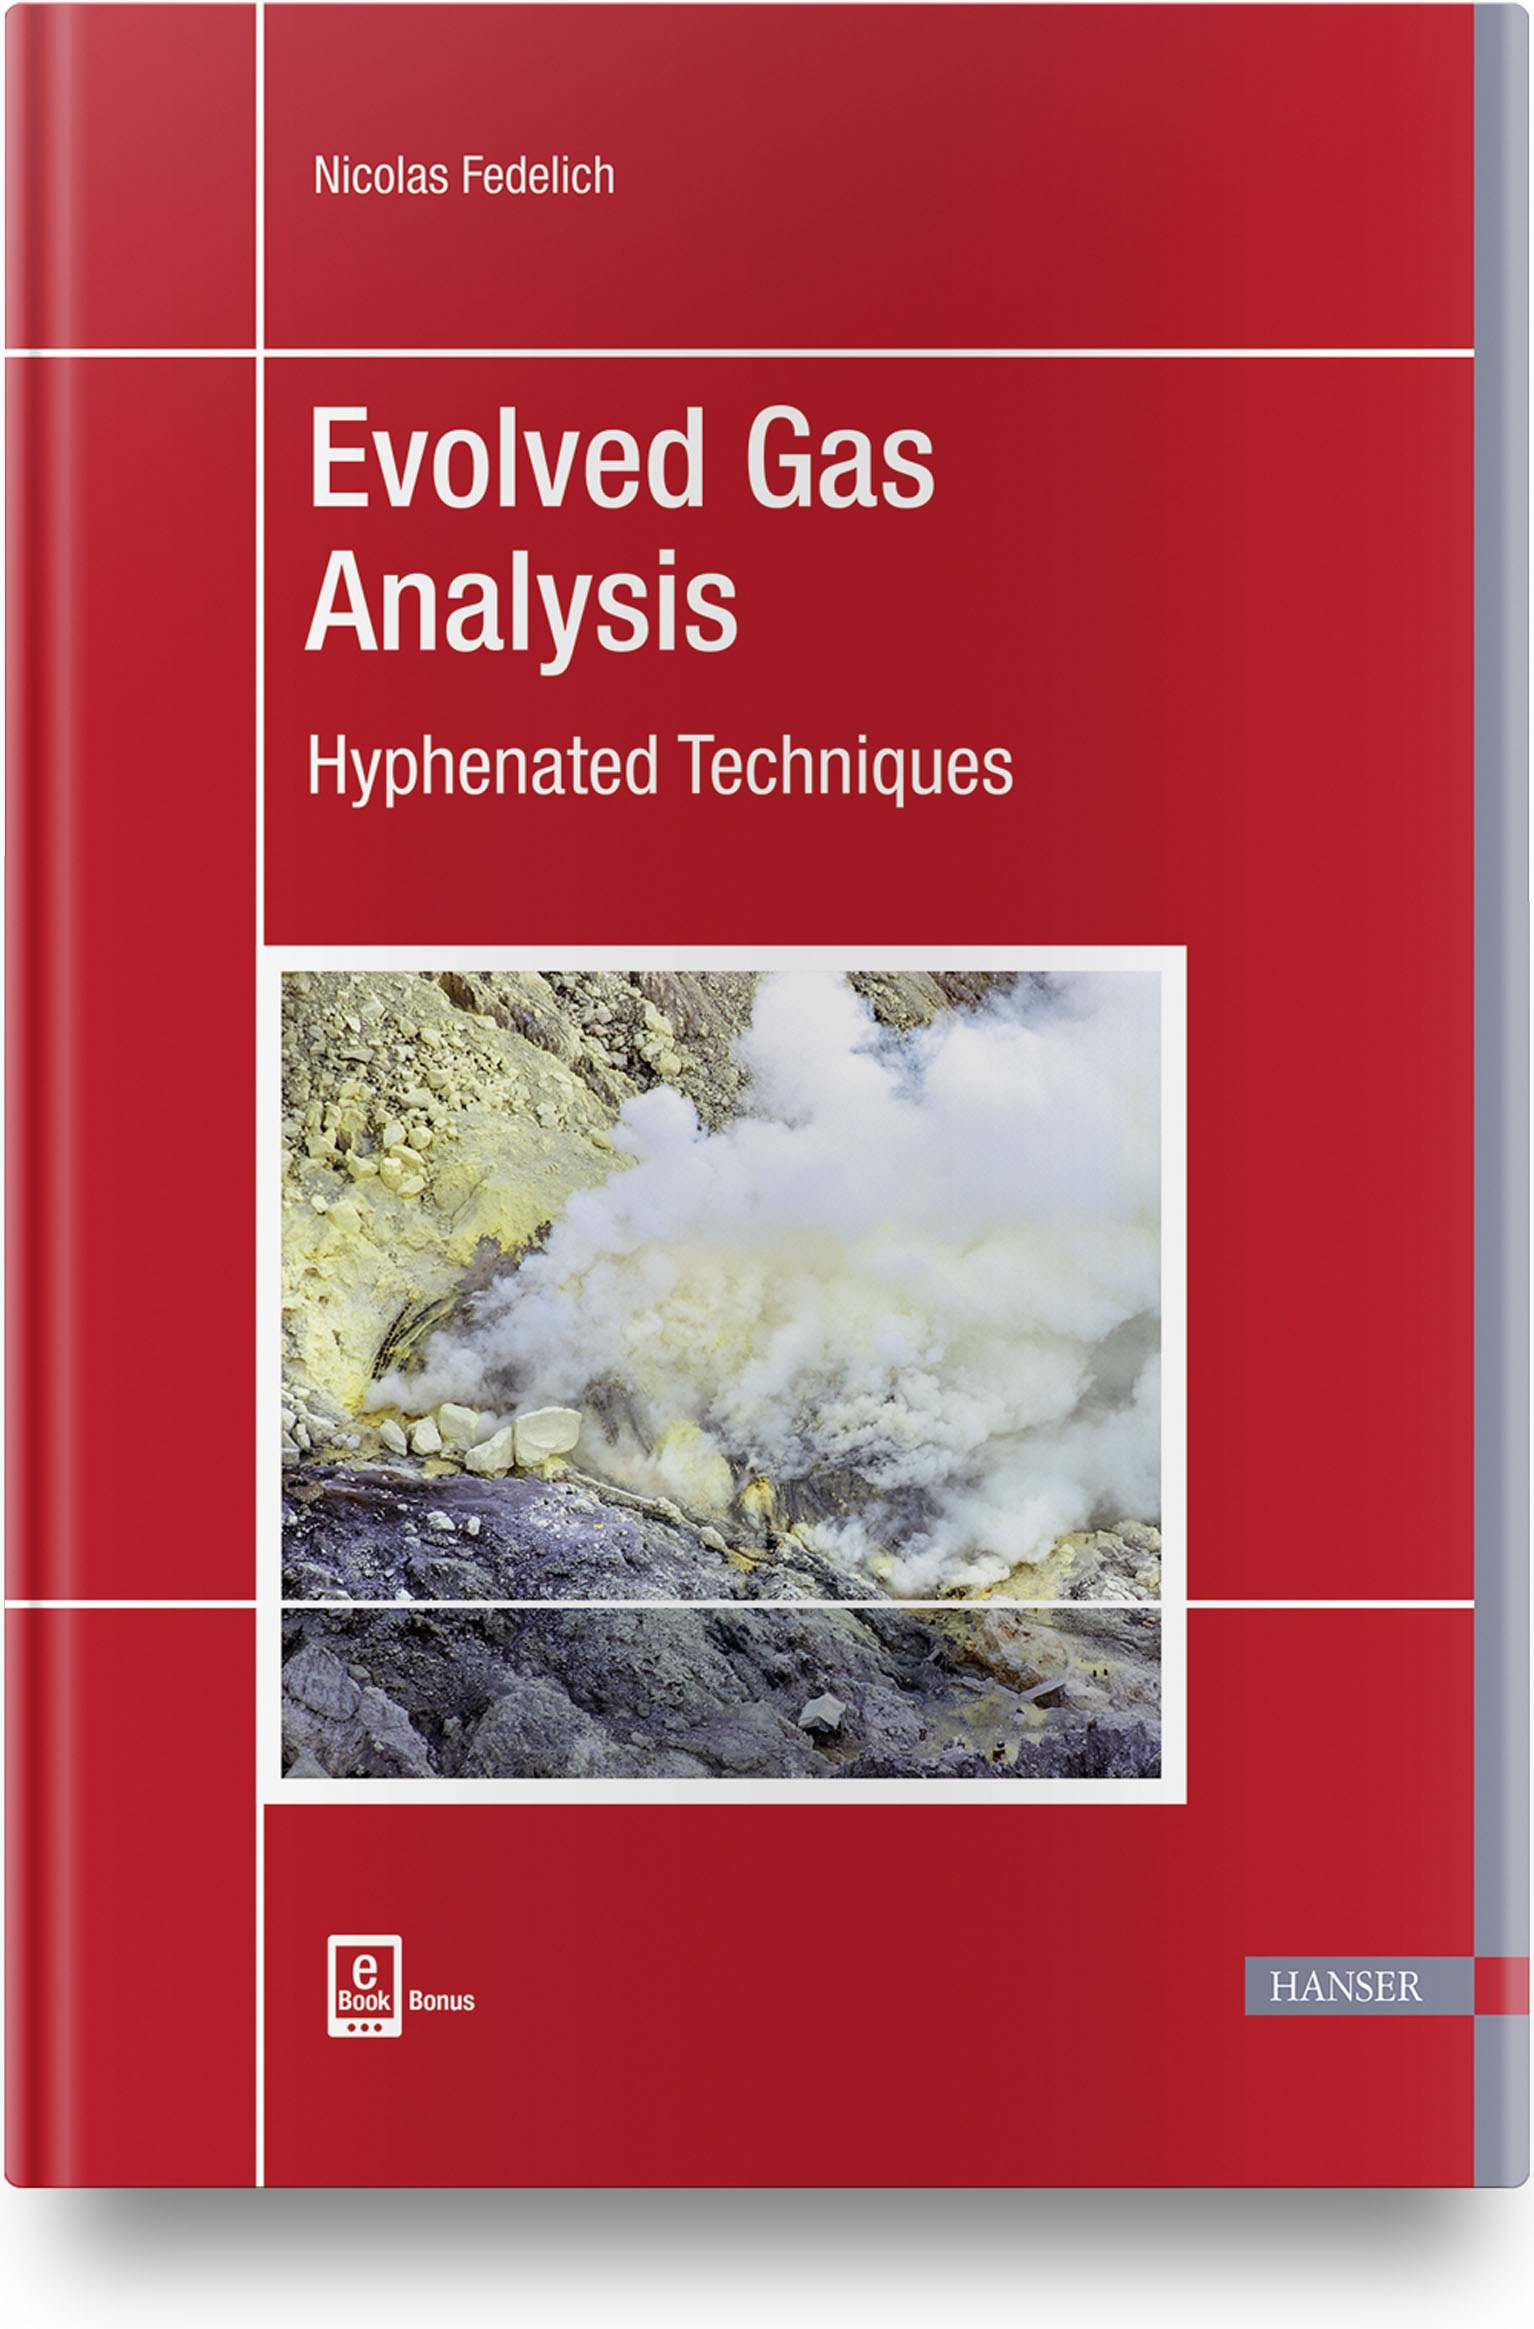 Fedelich, Evolved Gas Analysis, 978-1-56990-809-9